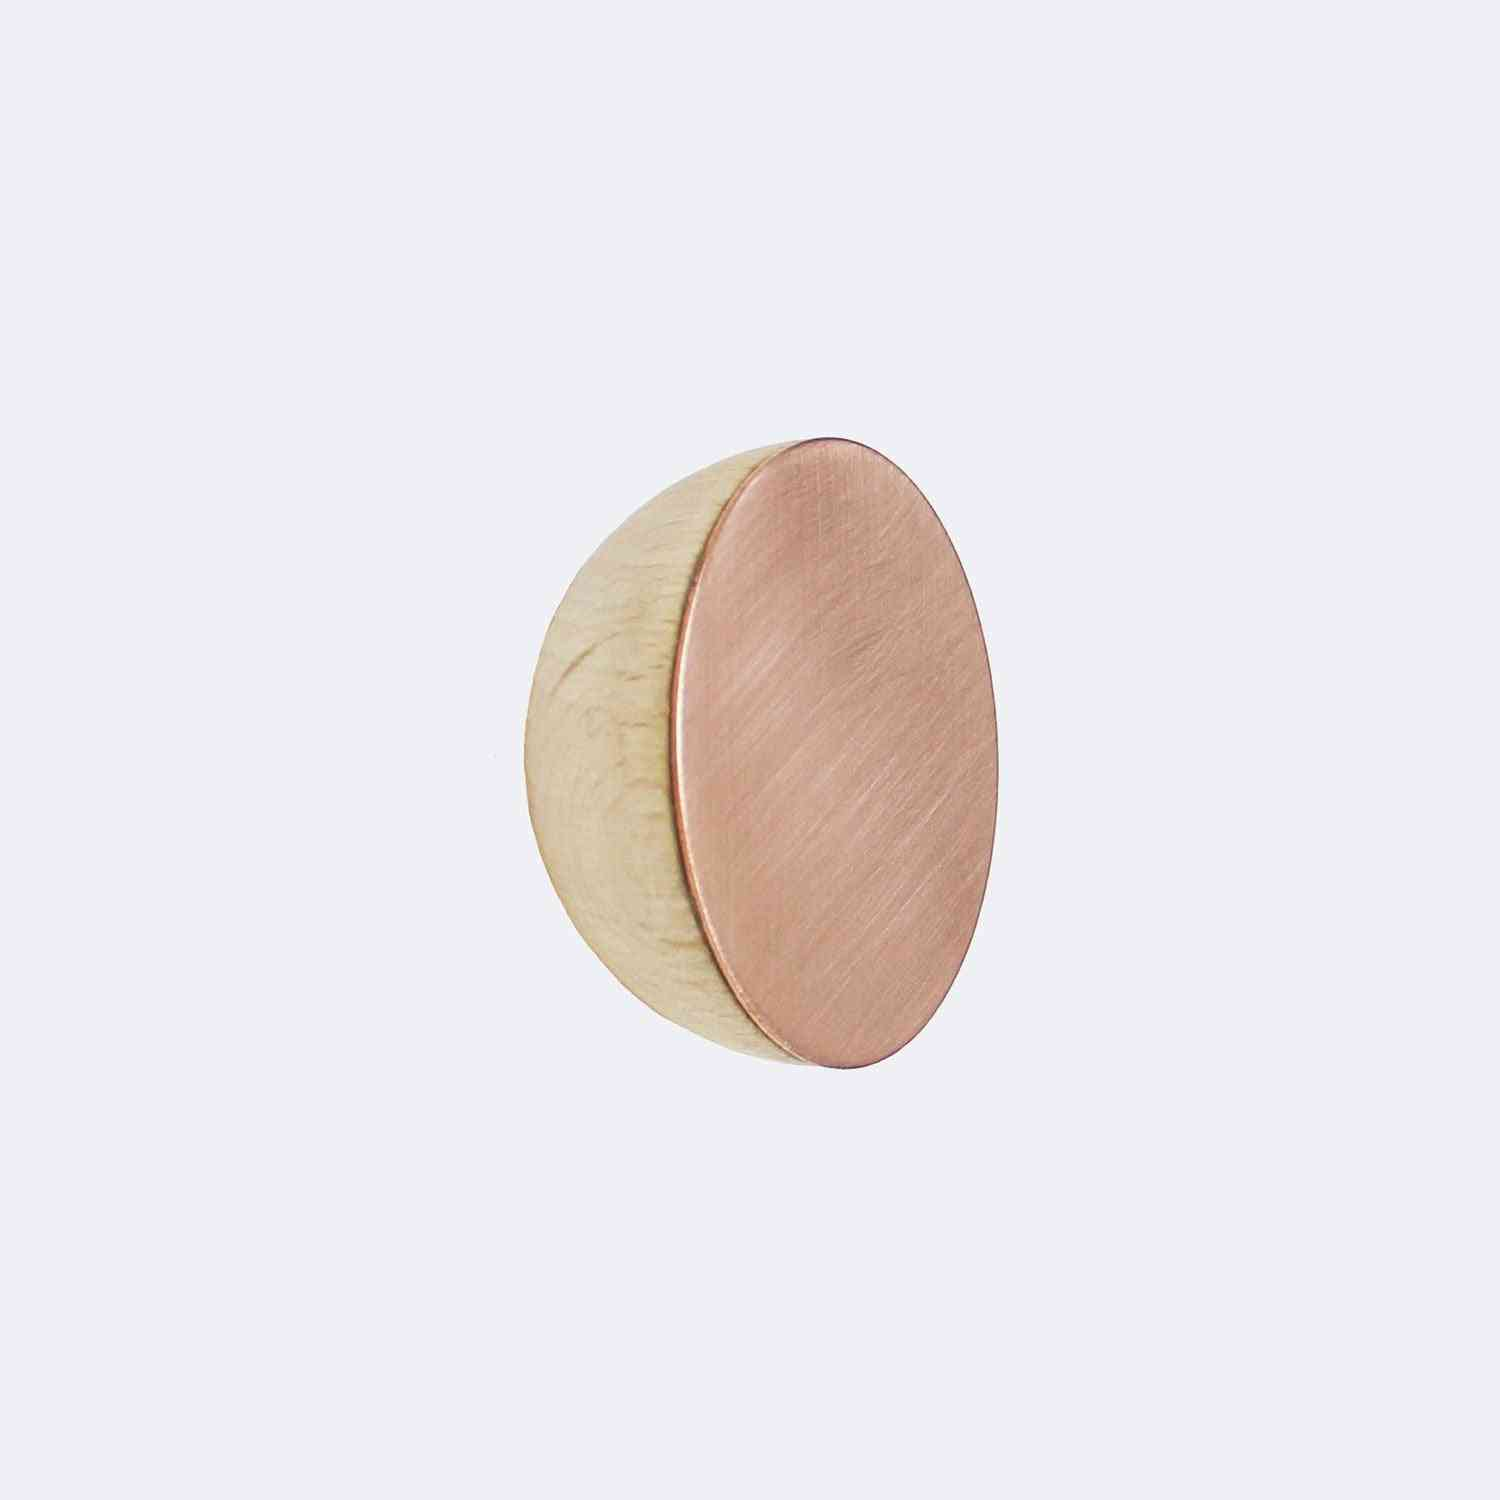 Round Beech Wood & Copper Wall Mounted Coat Hook Knob